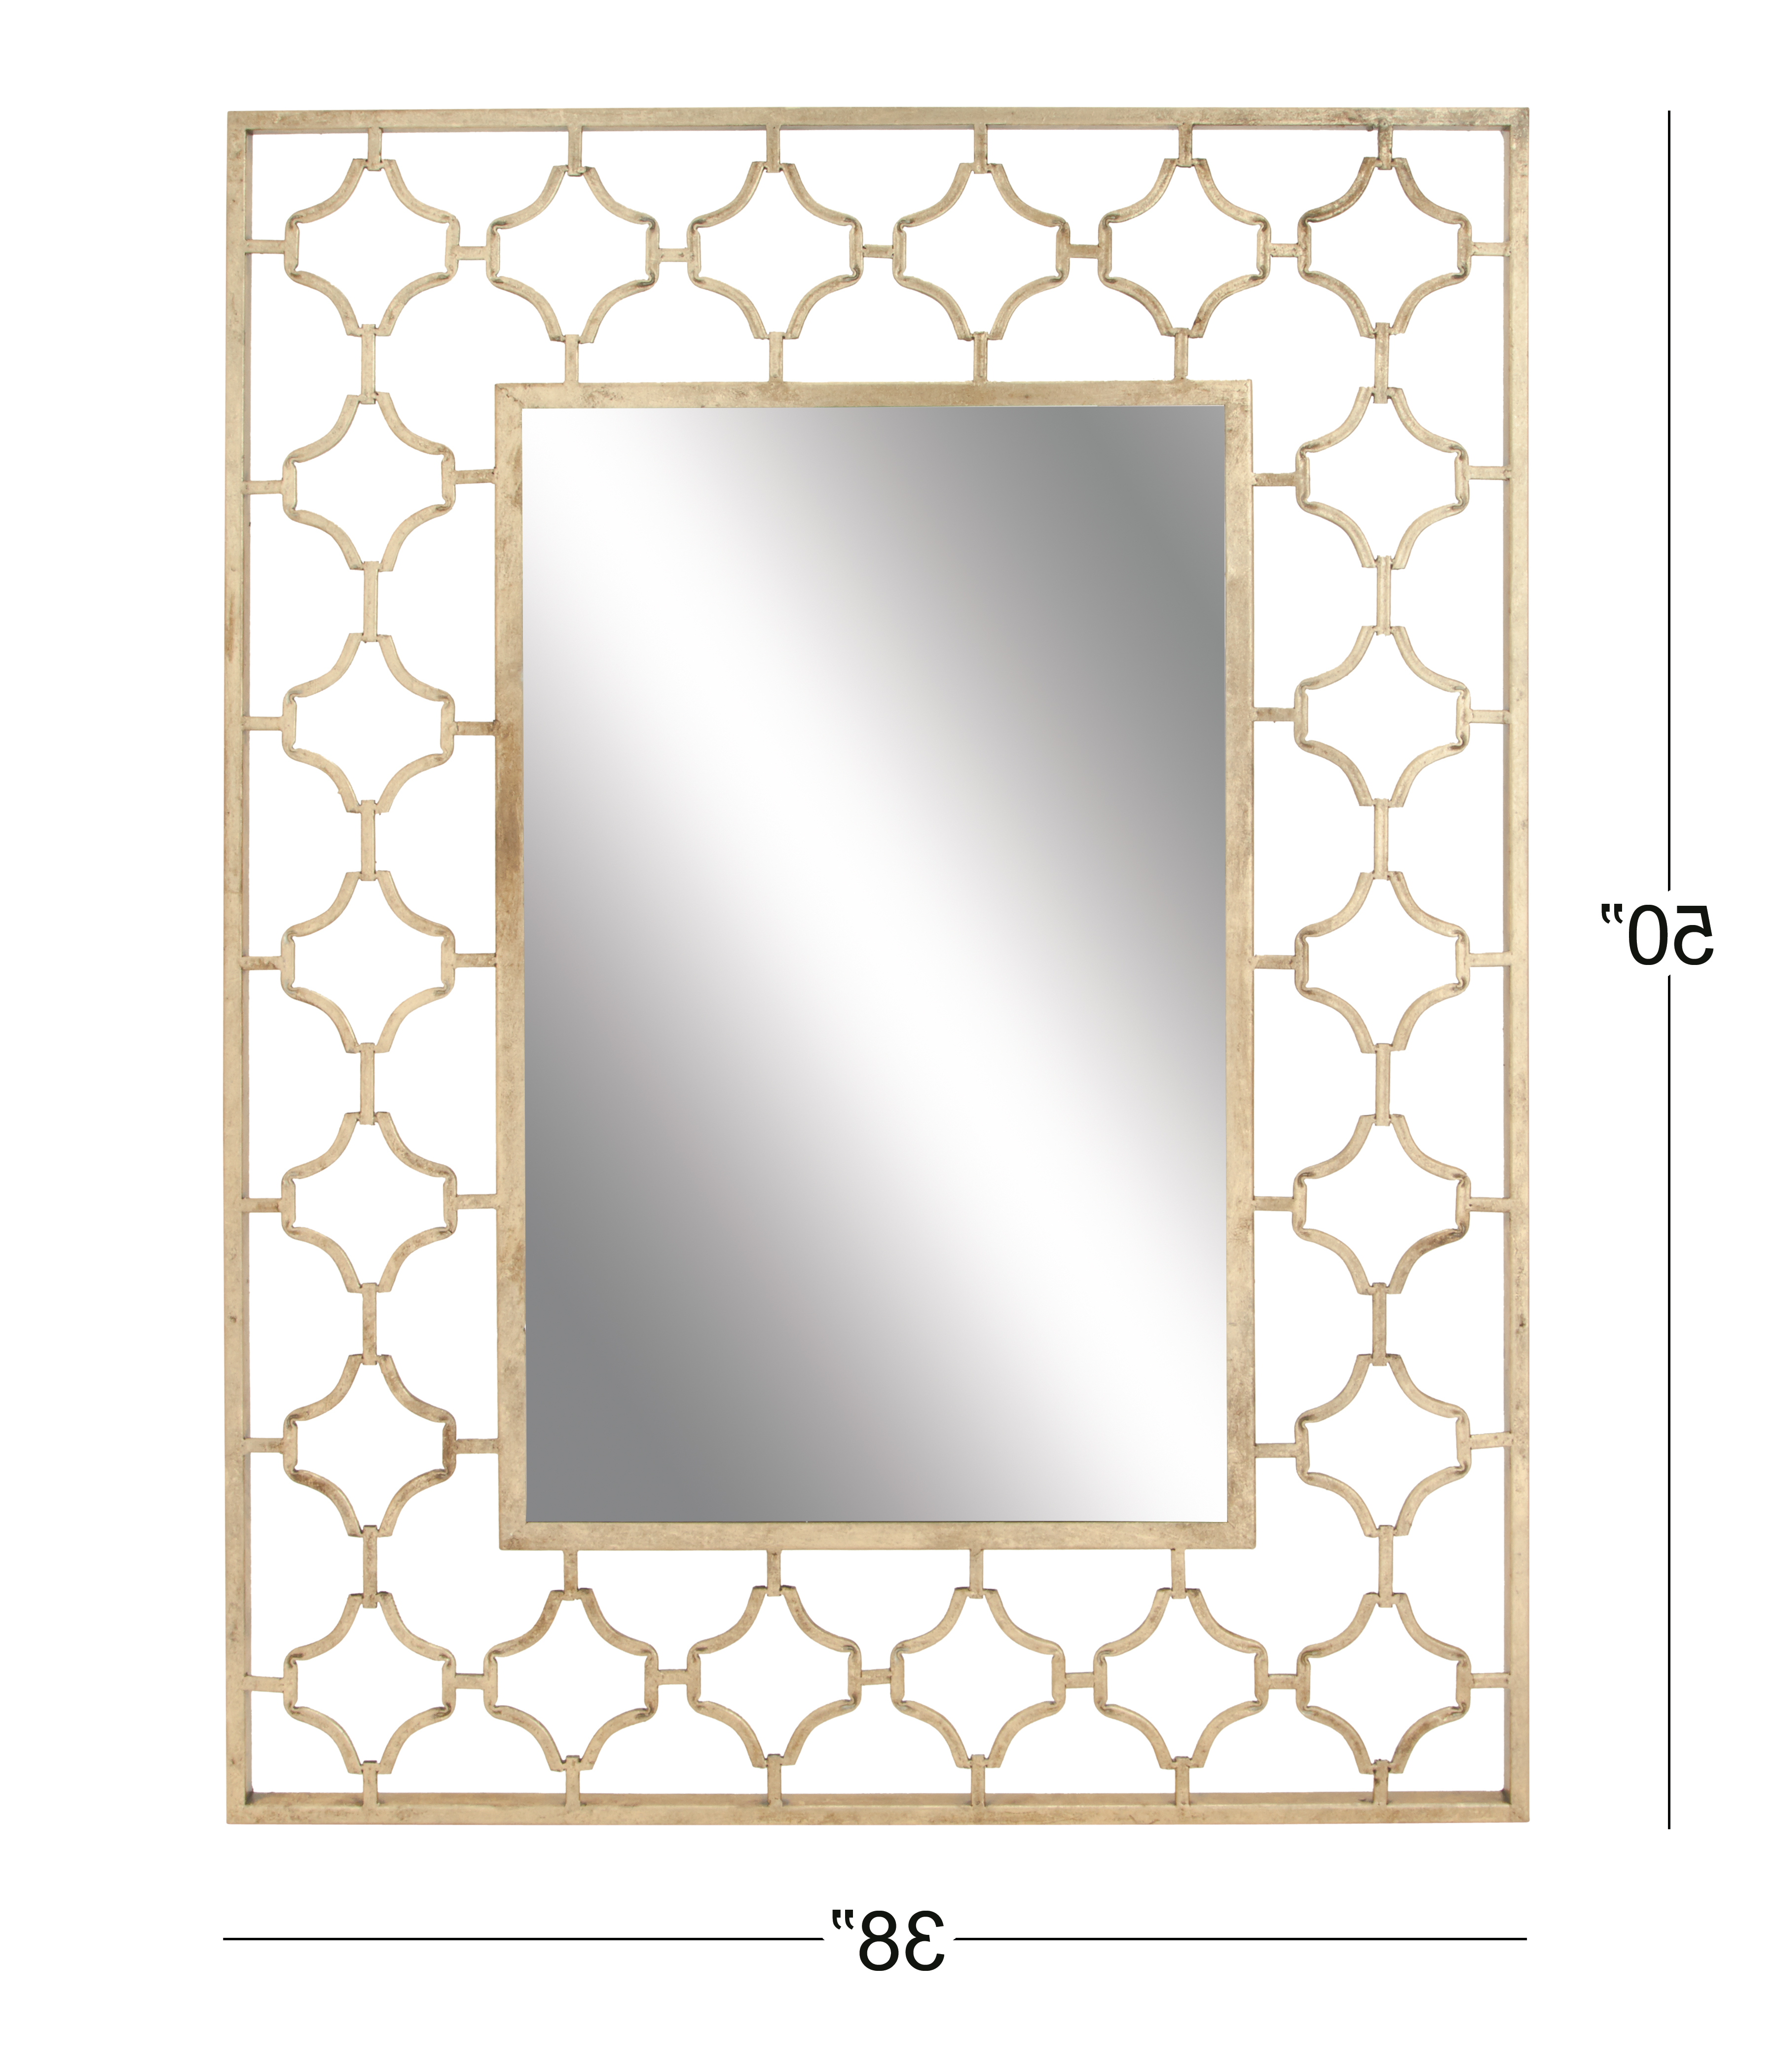 Decmode Glam 50 X 38 Inch Metal Quatrefoil Wall Mirror, Gold Regarding Most Recently Released Quatrefoil Wall Mirrors (View 13 of 20)